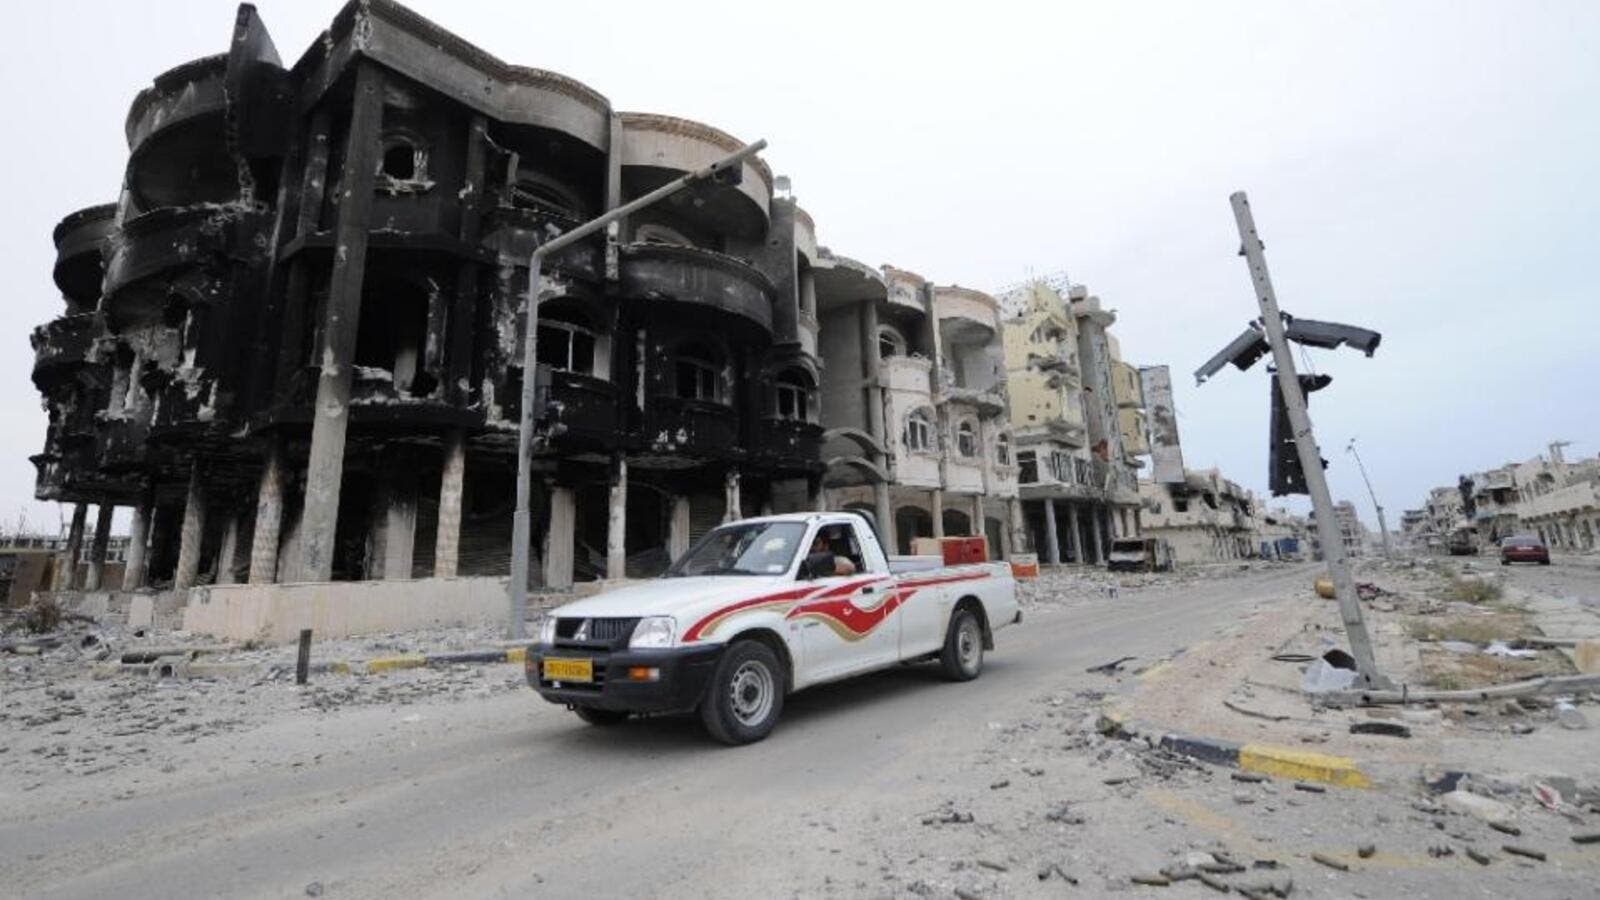 A resident driver past a burned building in Sirte, Libya. (AFP/File)